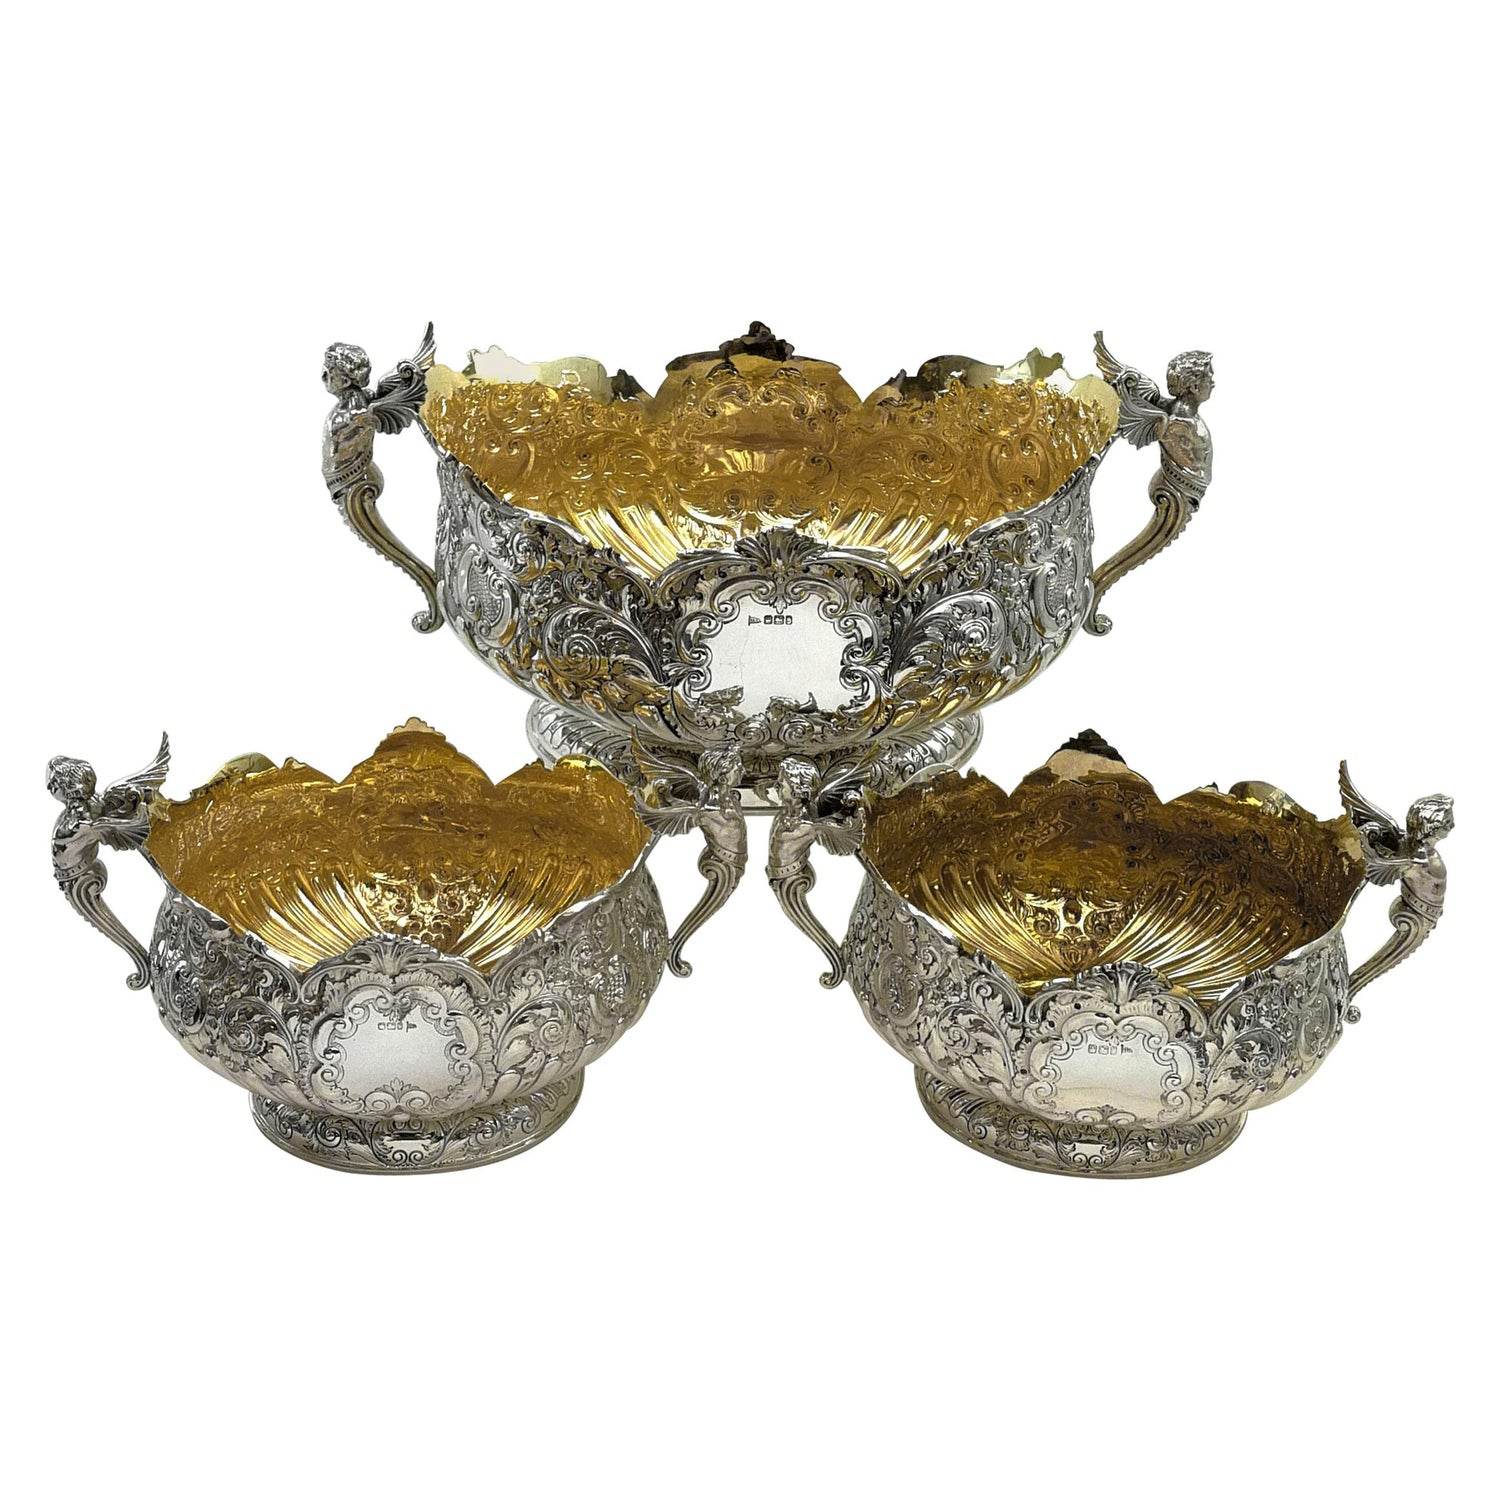 Impressive Suite of 3 Antique Victorian Silver Dishes / Set of Bowls 1895-1898